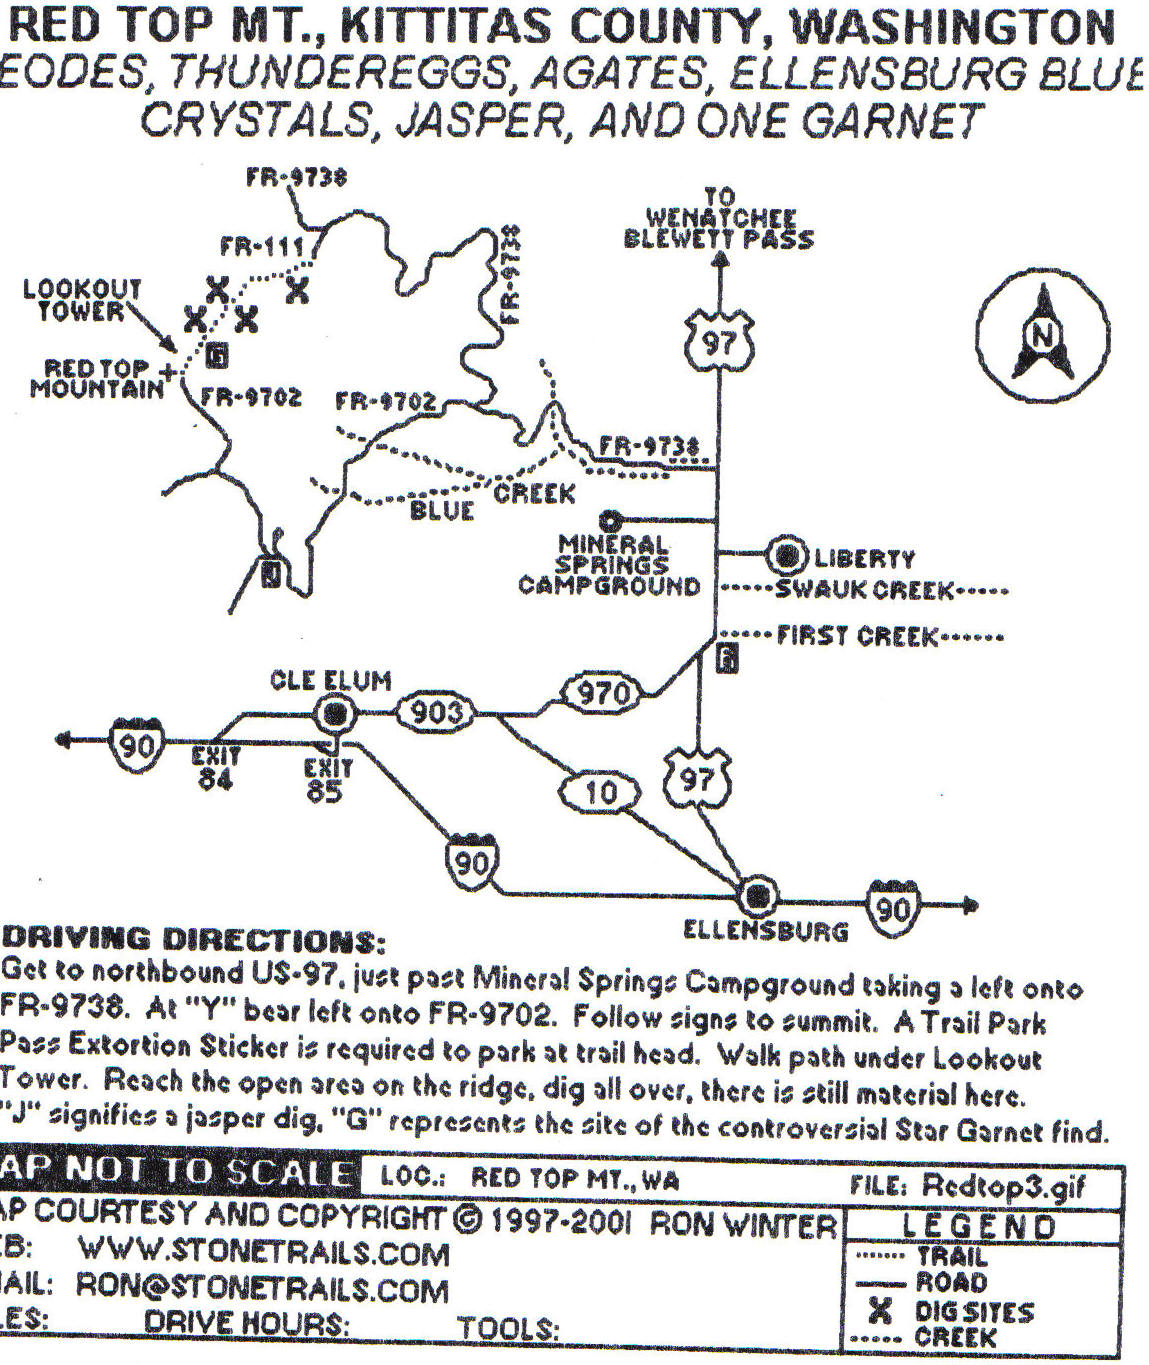 washington trails map with Ellensburg Blue Agates And Where To Look on 14660 as well Nile likewise Olympic National Forest moreover Trails Great Allegheny Passage furthermore Hiking Trails Letchworth State Park New York 4759.